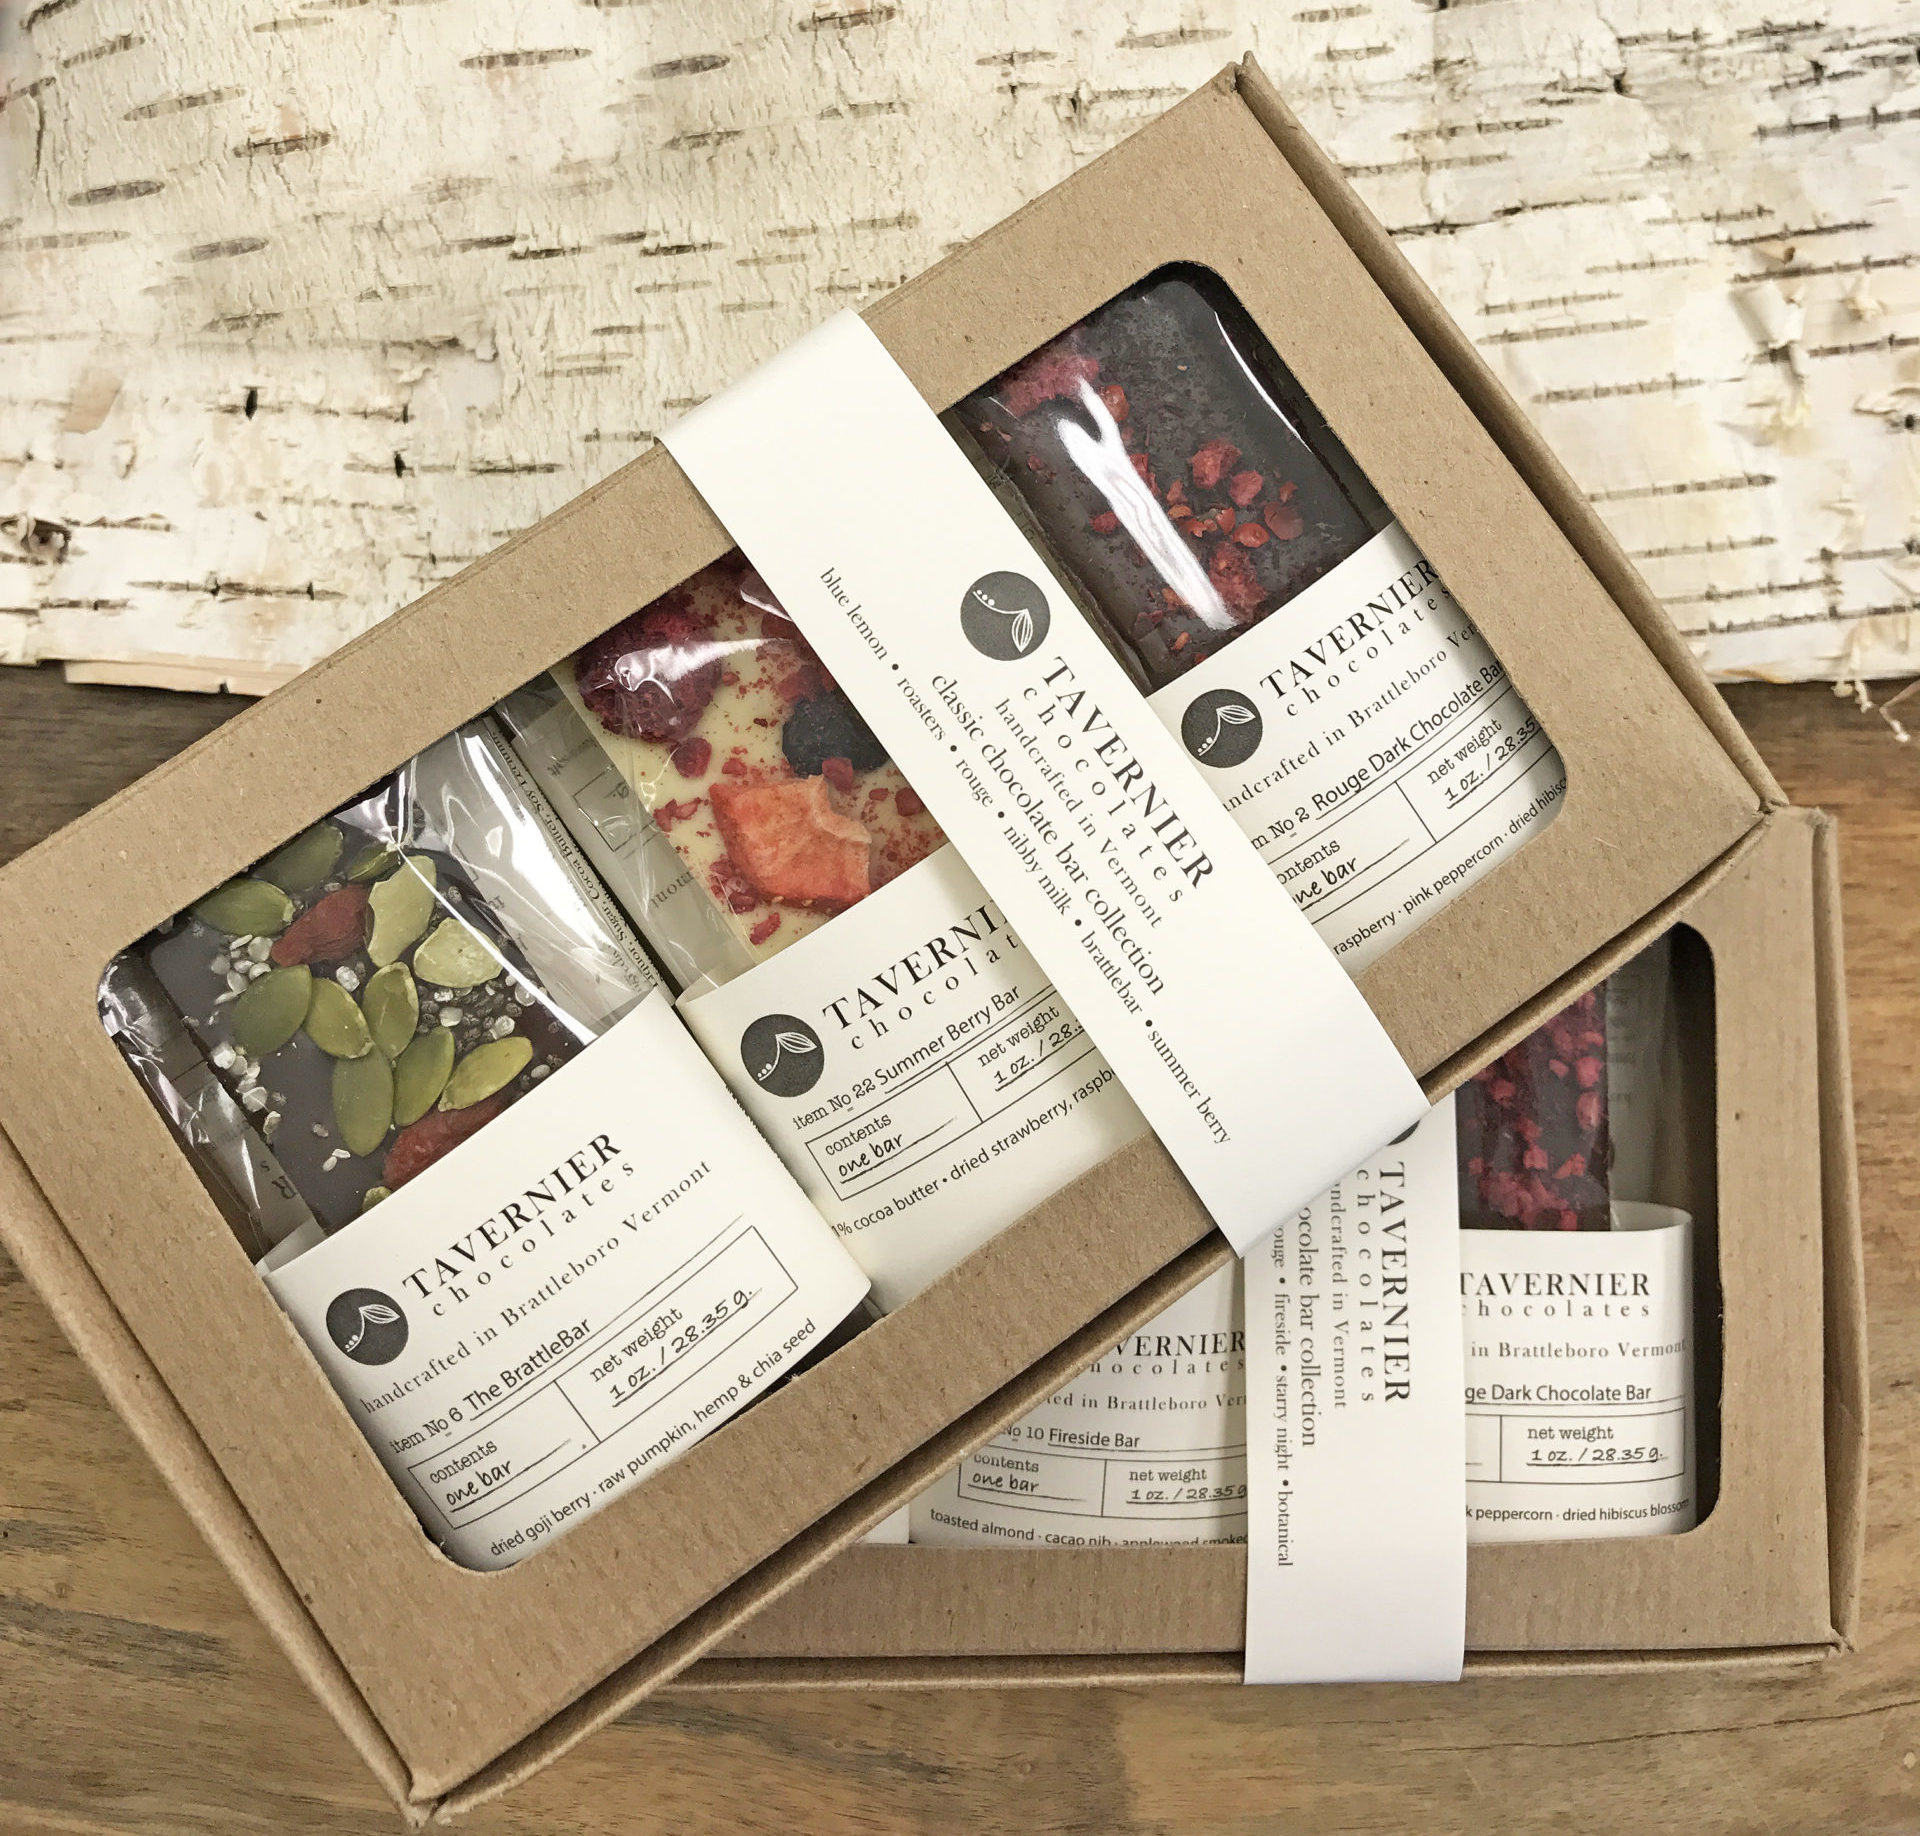 Chocolate Bar Box Collection - Two Packages of Tavernier Chocolate Bars